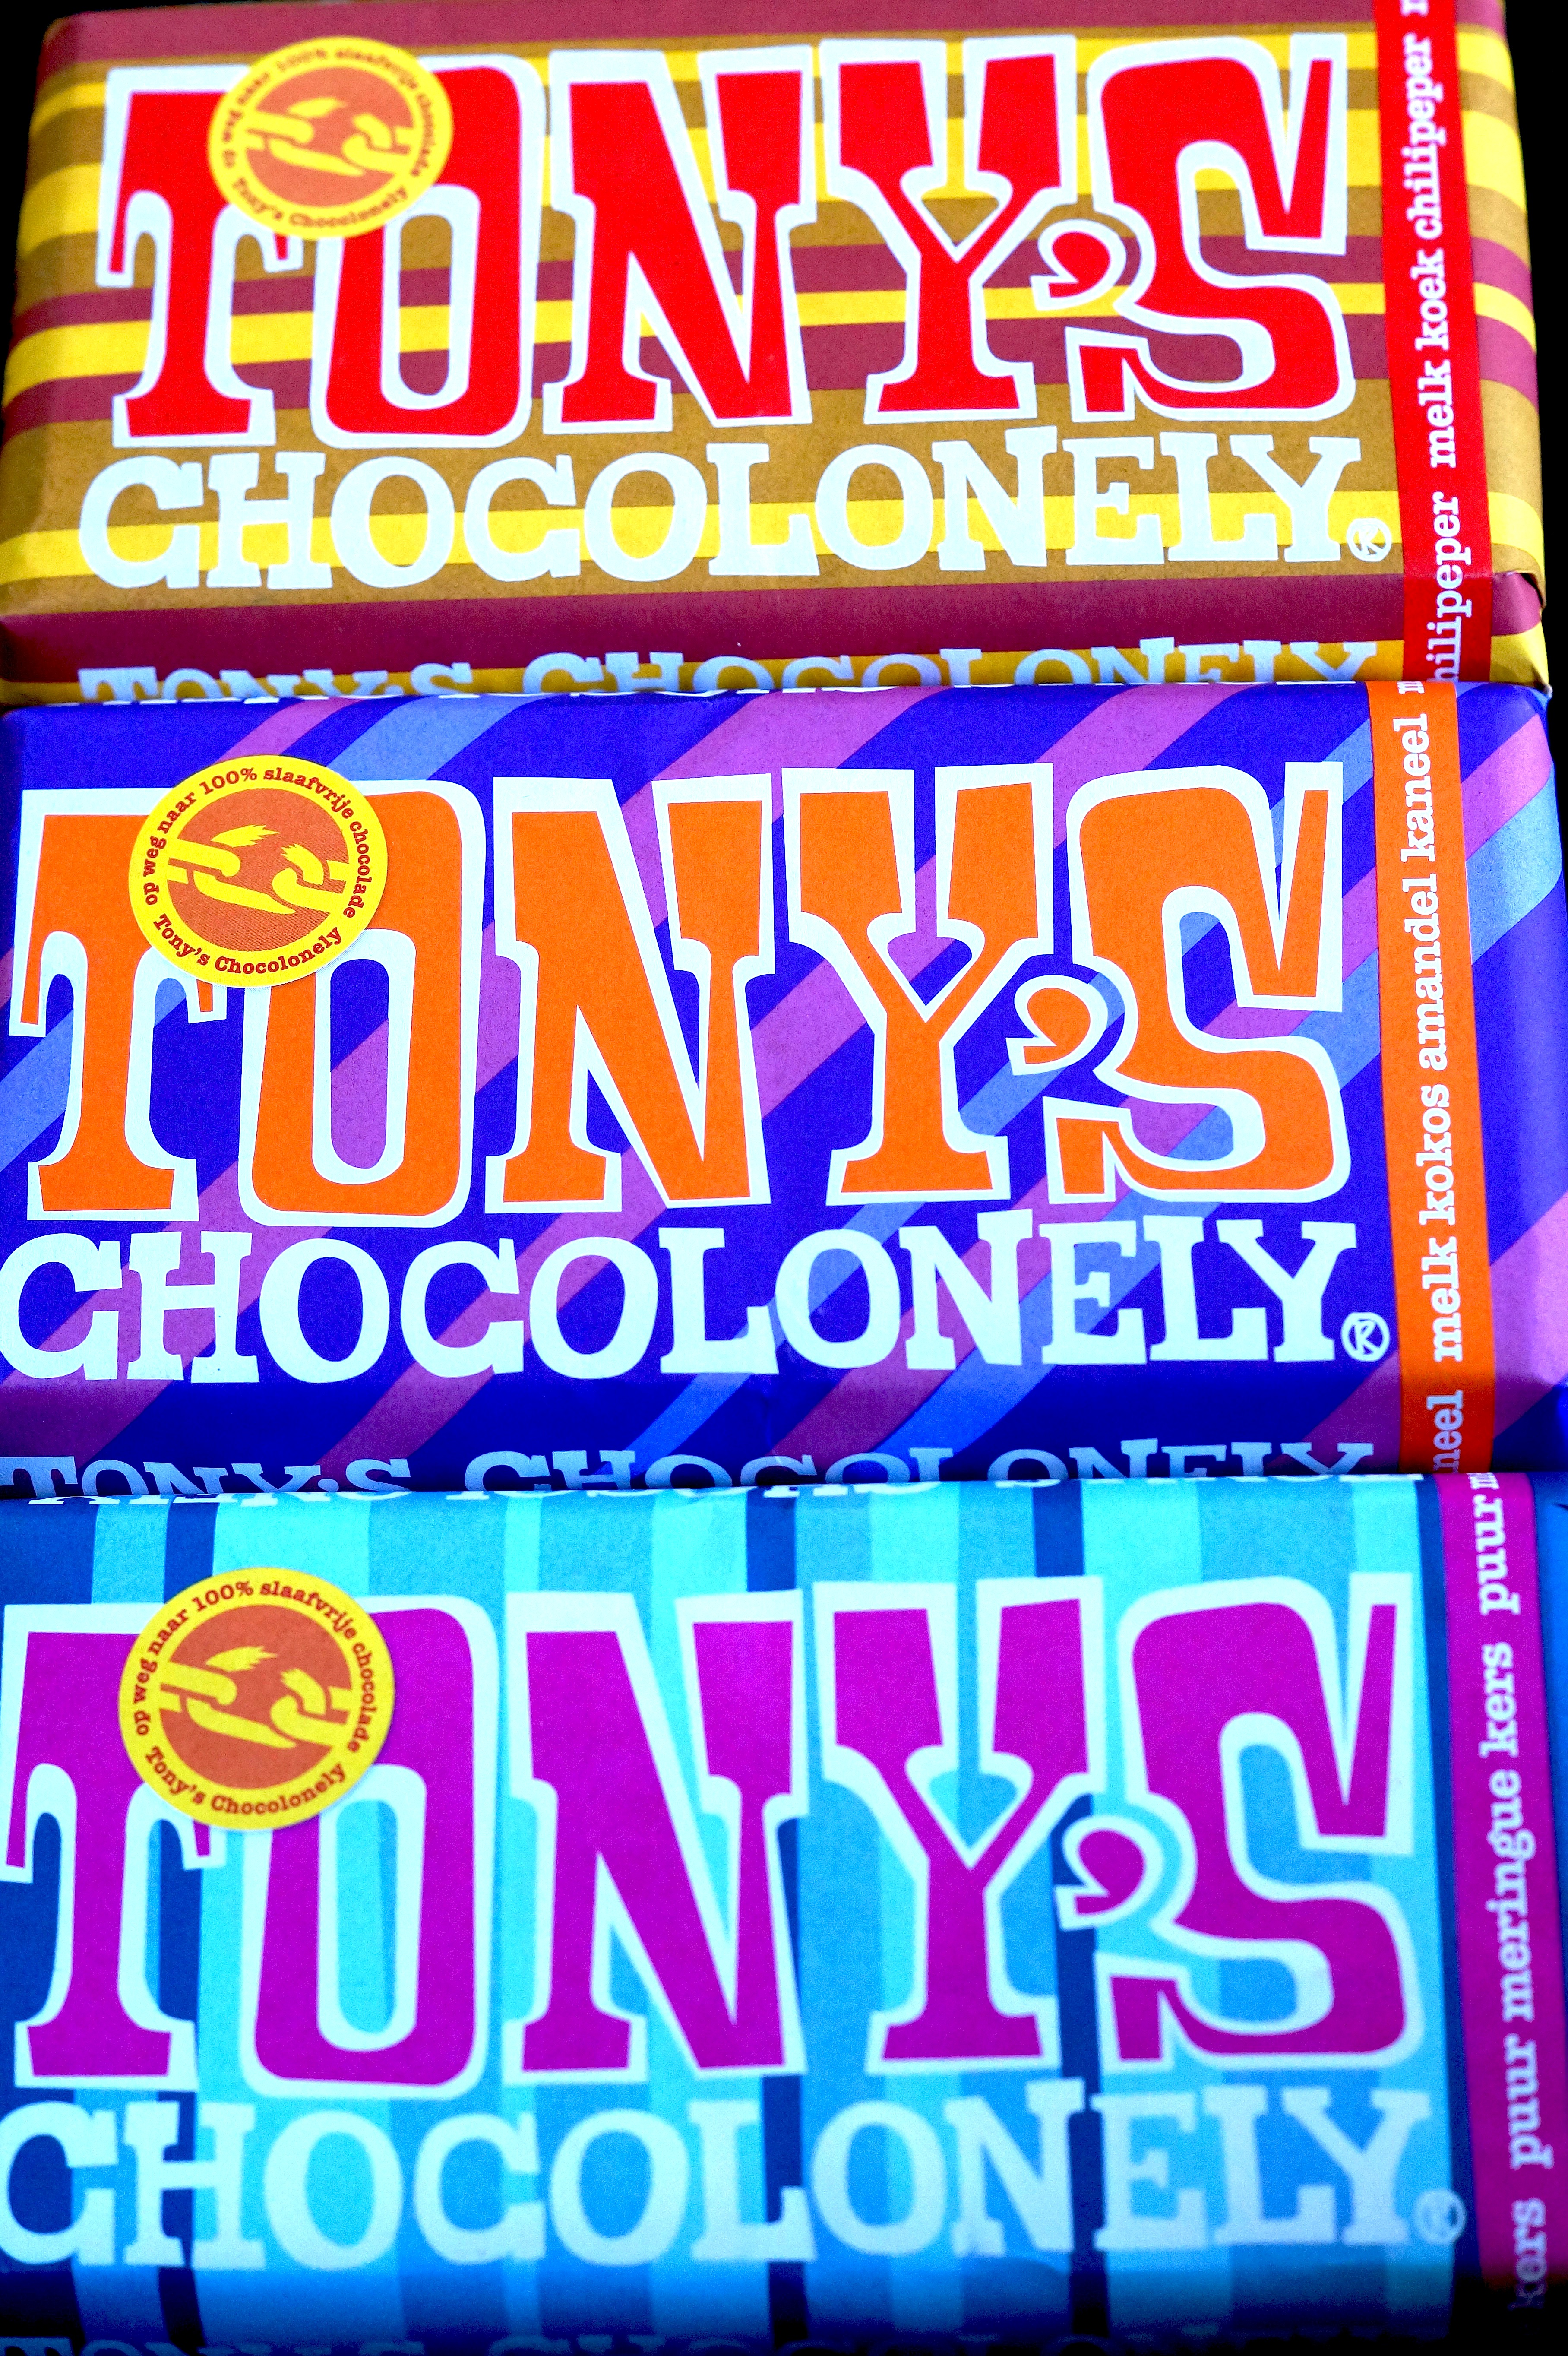 tonys chocolonely limited edition i am cooking with love